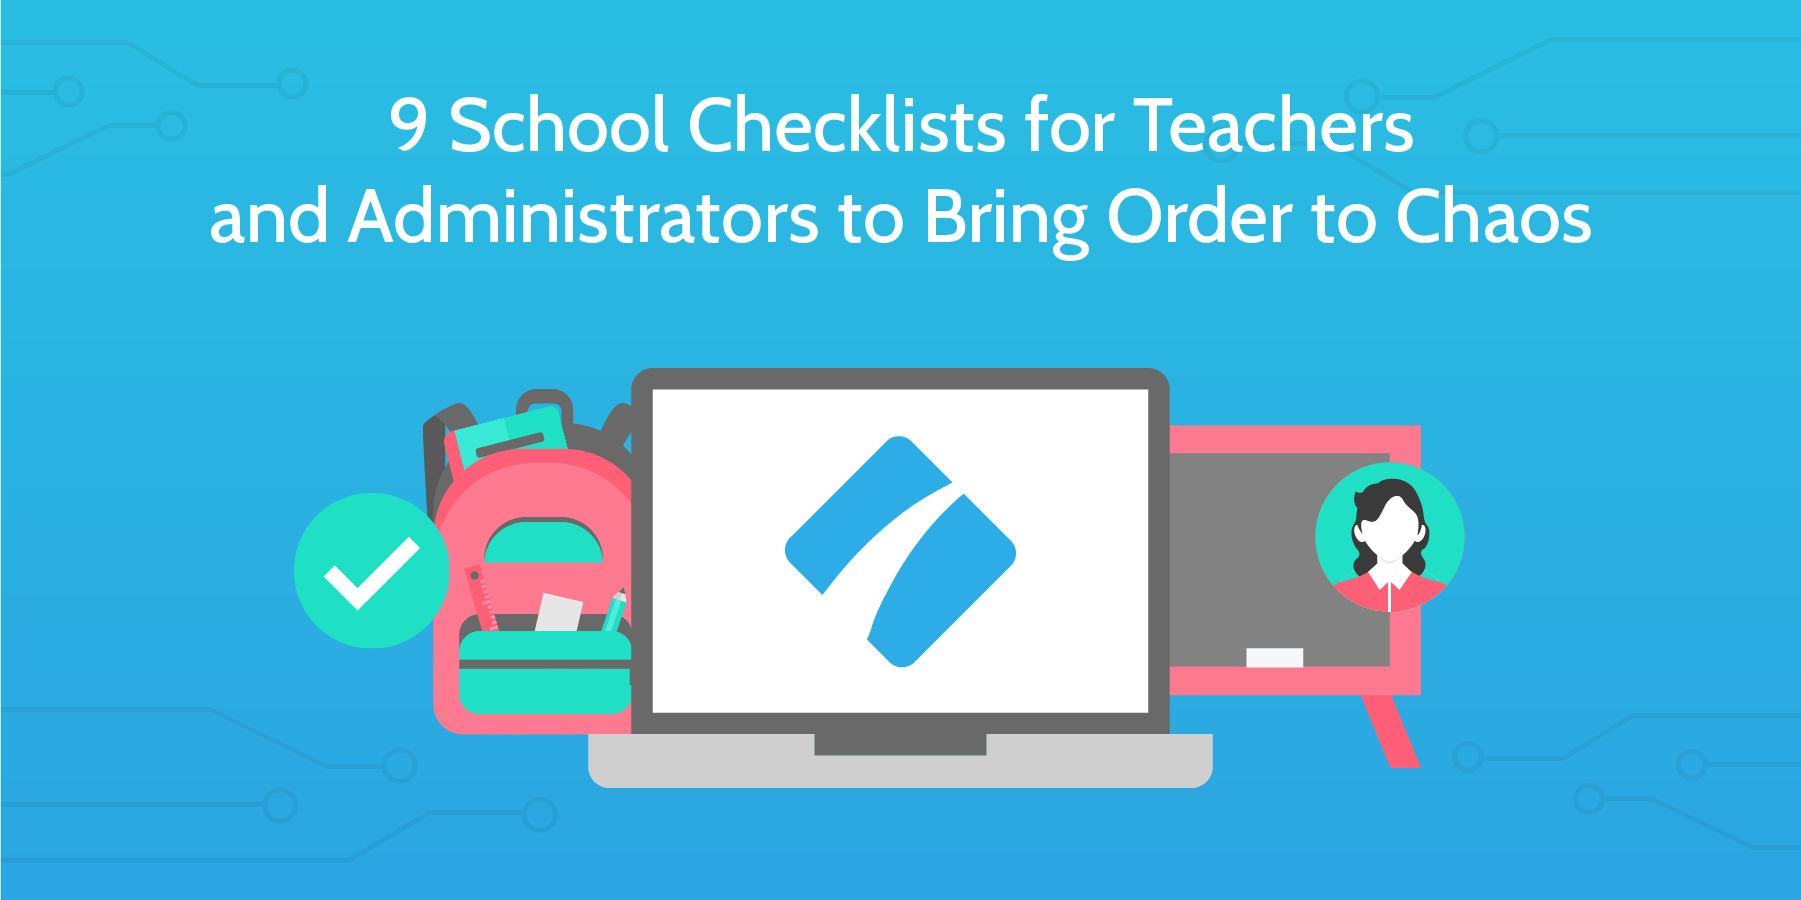 9 School Checklists for Teachers and Administrators to Bring